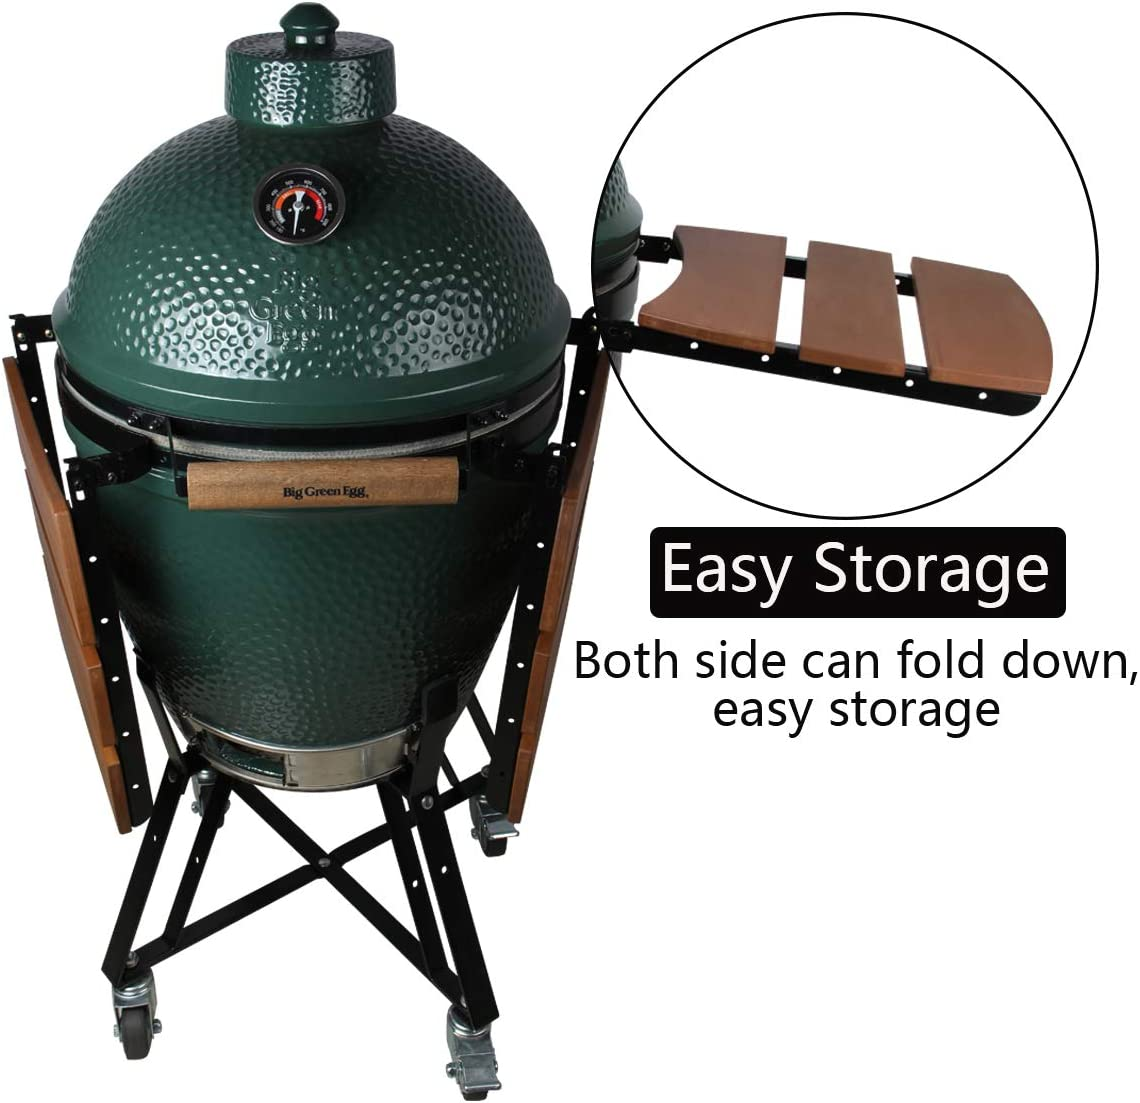 Dracarys Big Green Egg Grill HDPE Shelves Green Egg Accessories Replacement Egg Mate BBQ Grill Folding Side Shelves Fit for Large Big Green Egg Side Shelves Grill Smoker Accessories,Set of 2-New L